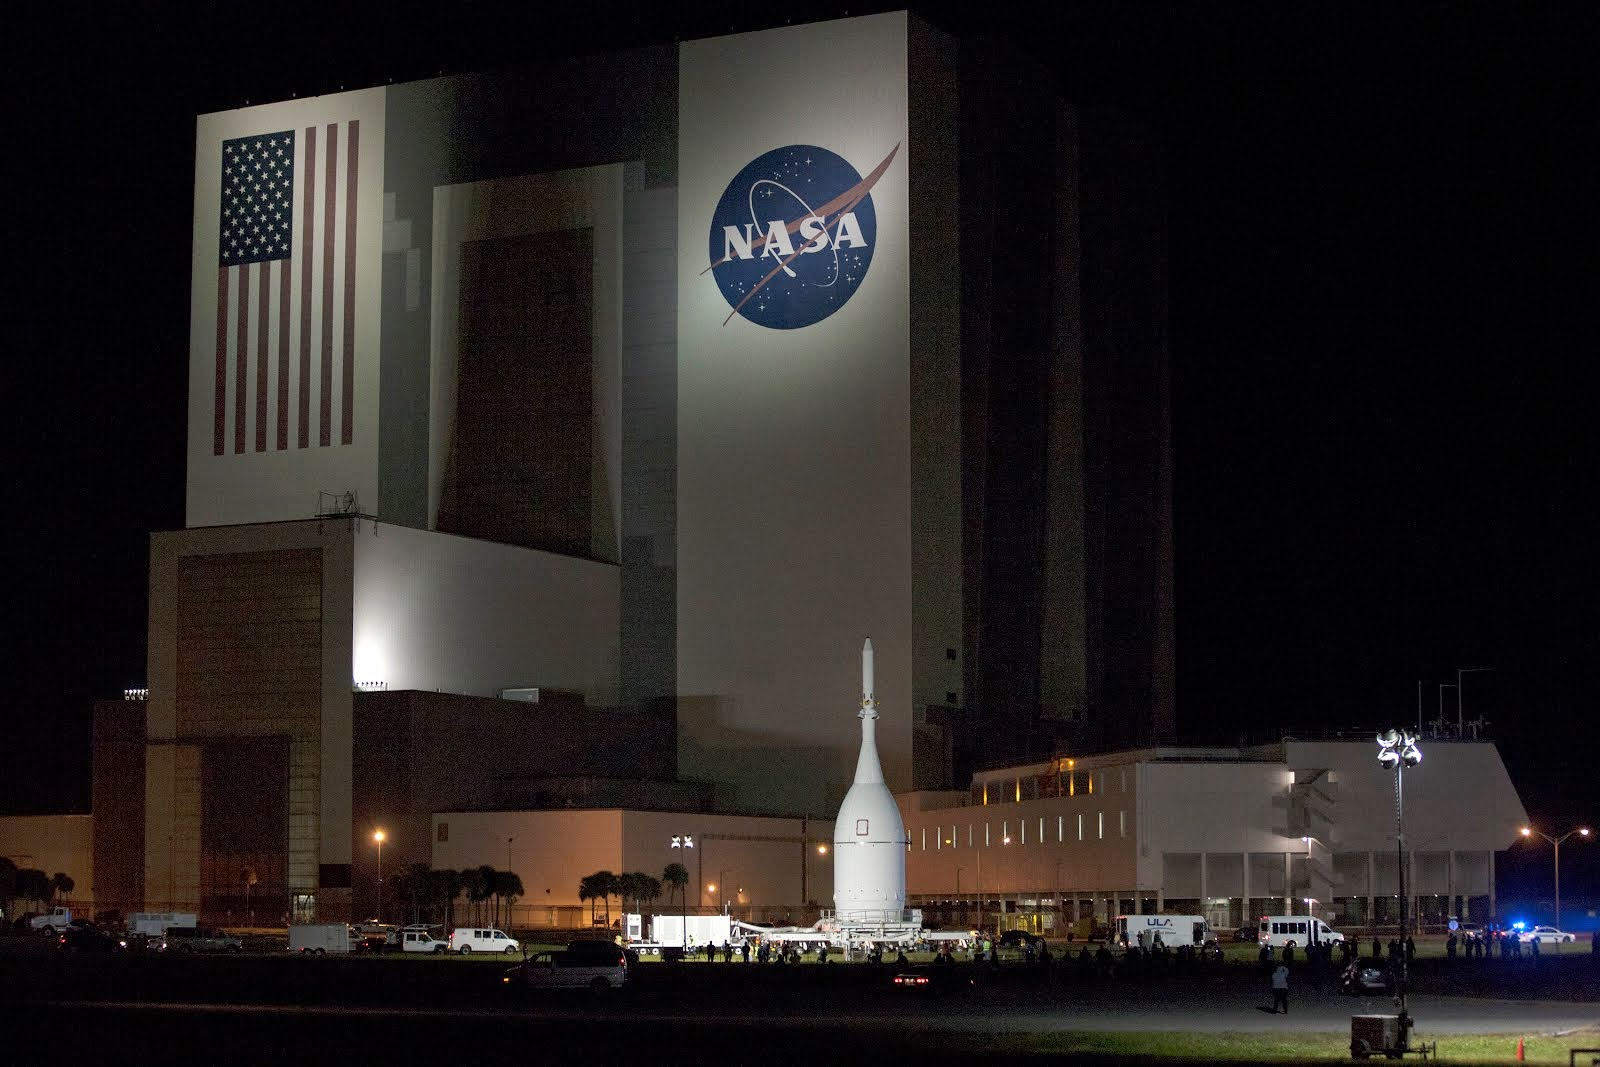 ORION PASSES SPACEPORT VEHICLE ASSEMBLY BUILDING